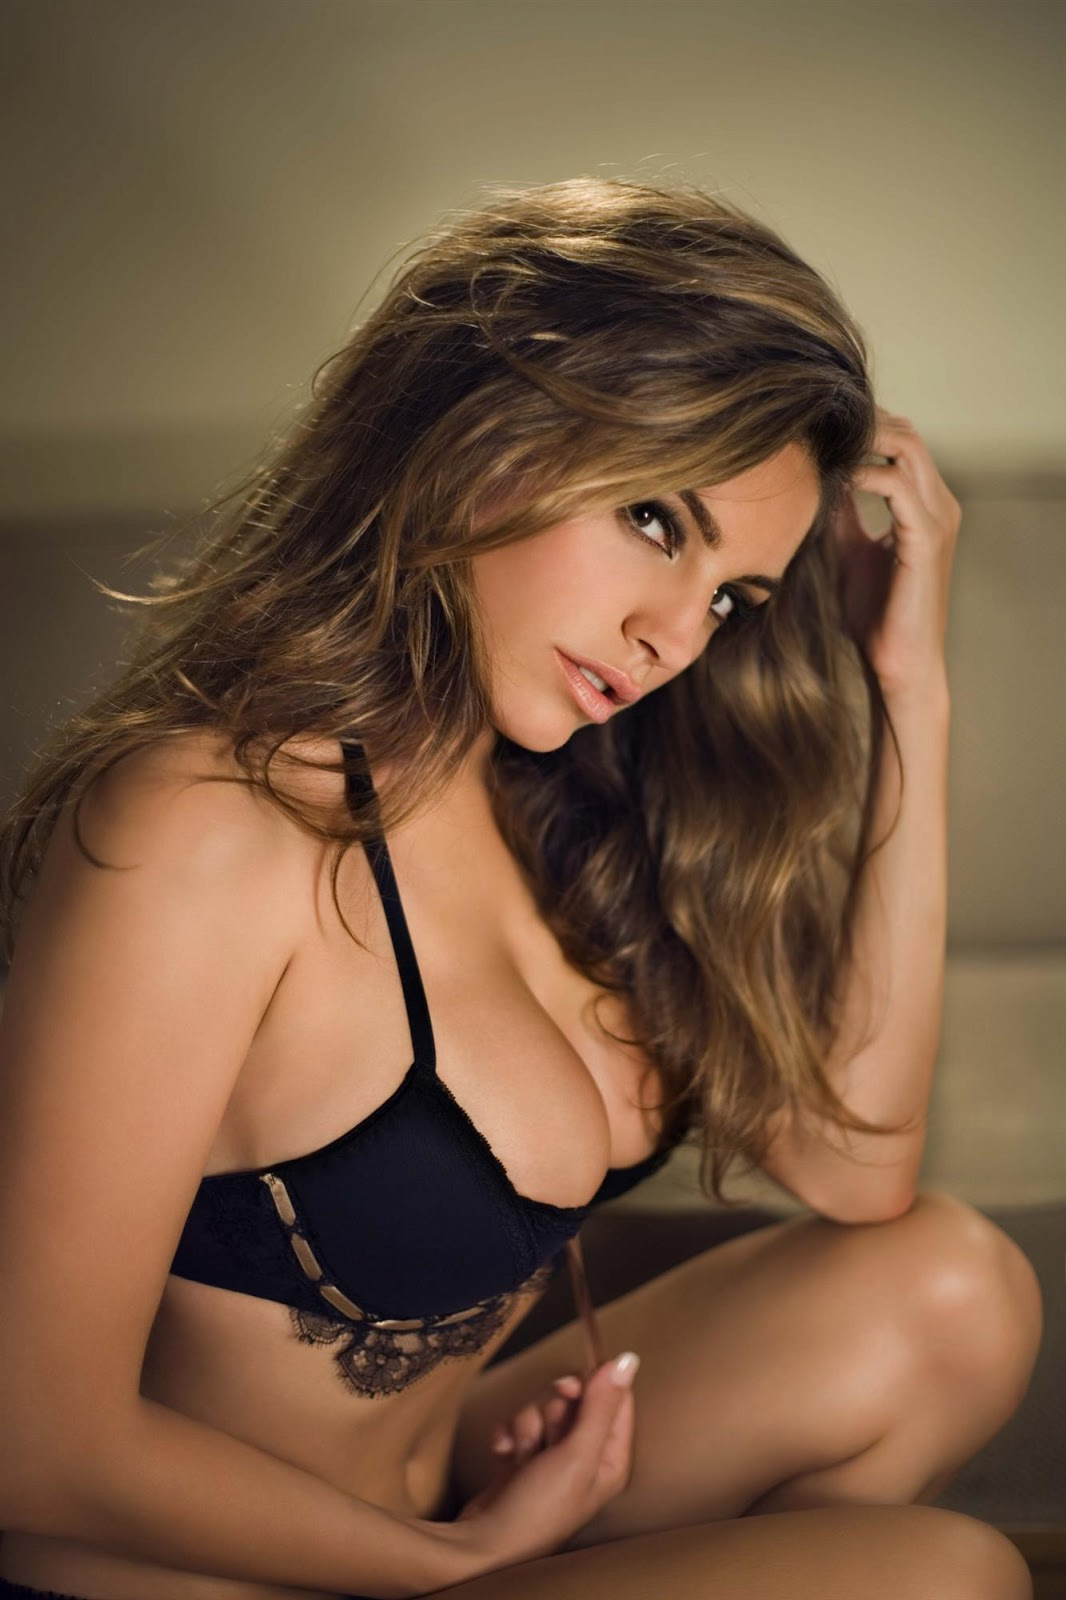 Kelly+Brook+2009+Calendar+2 18 Best Kelly Brook Photos in Swimwear